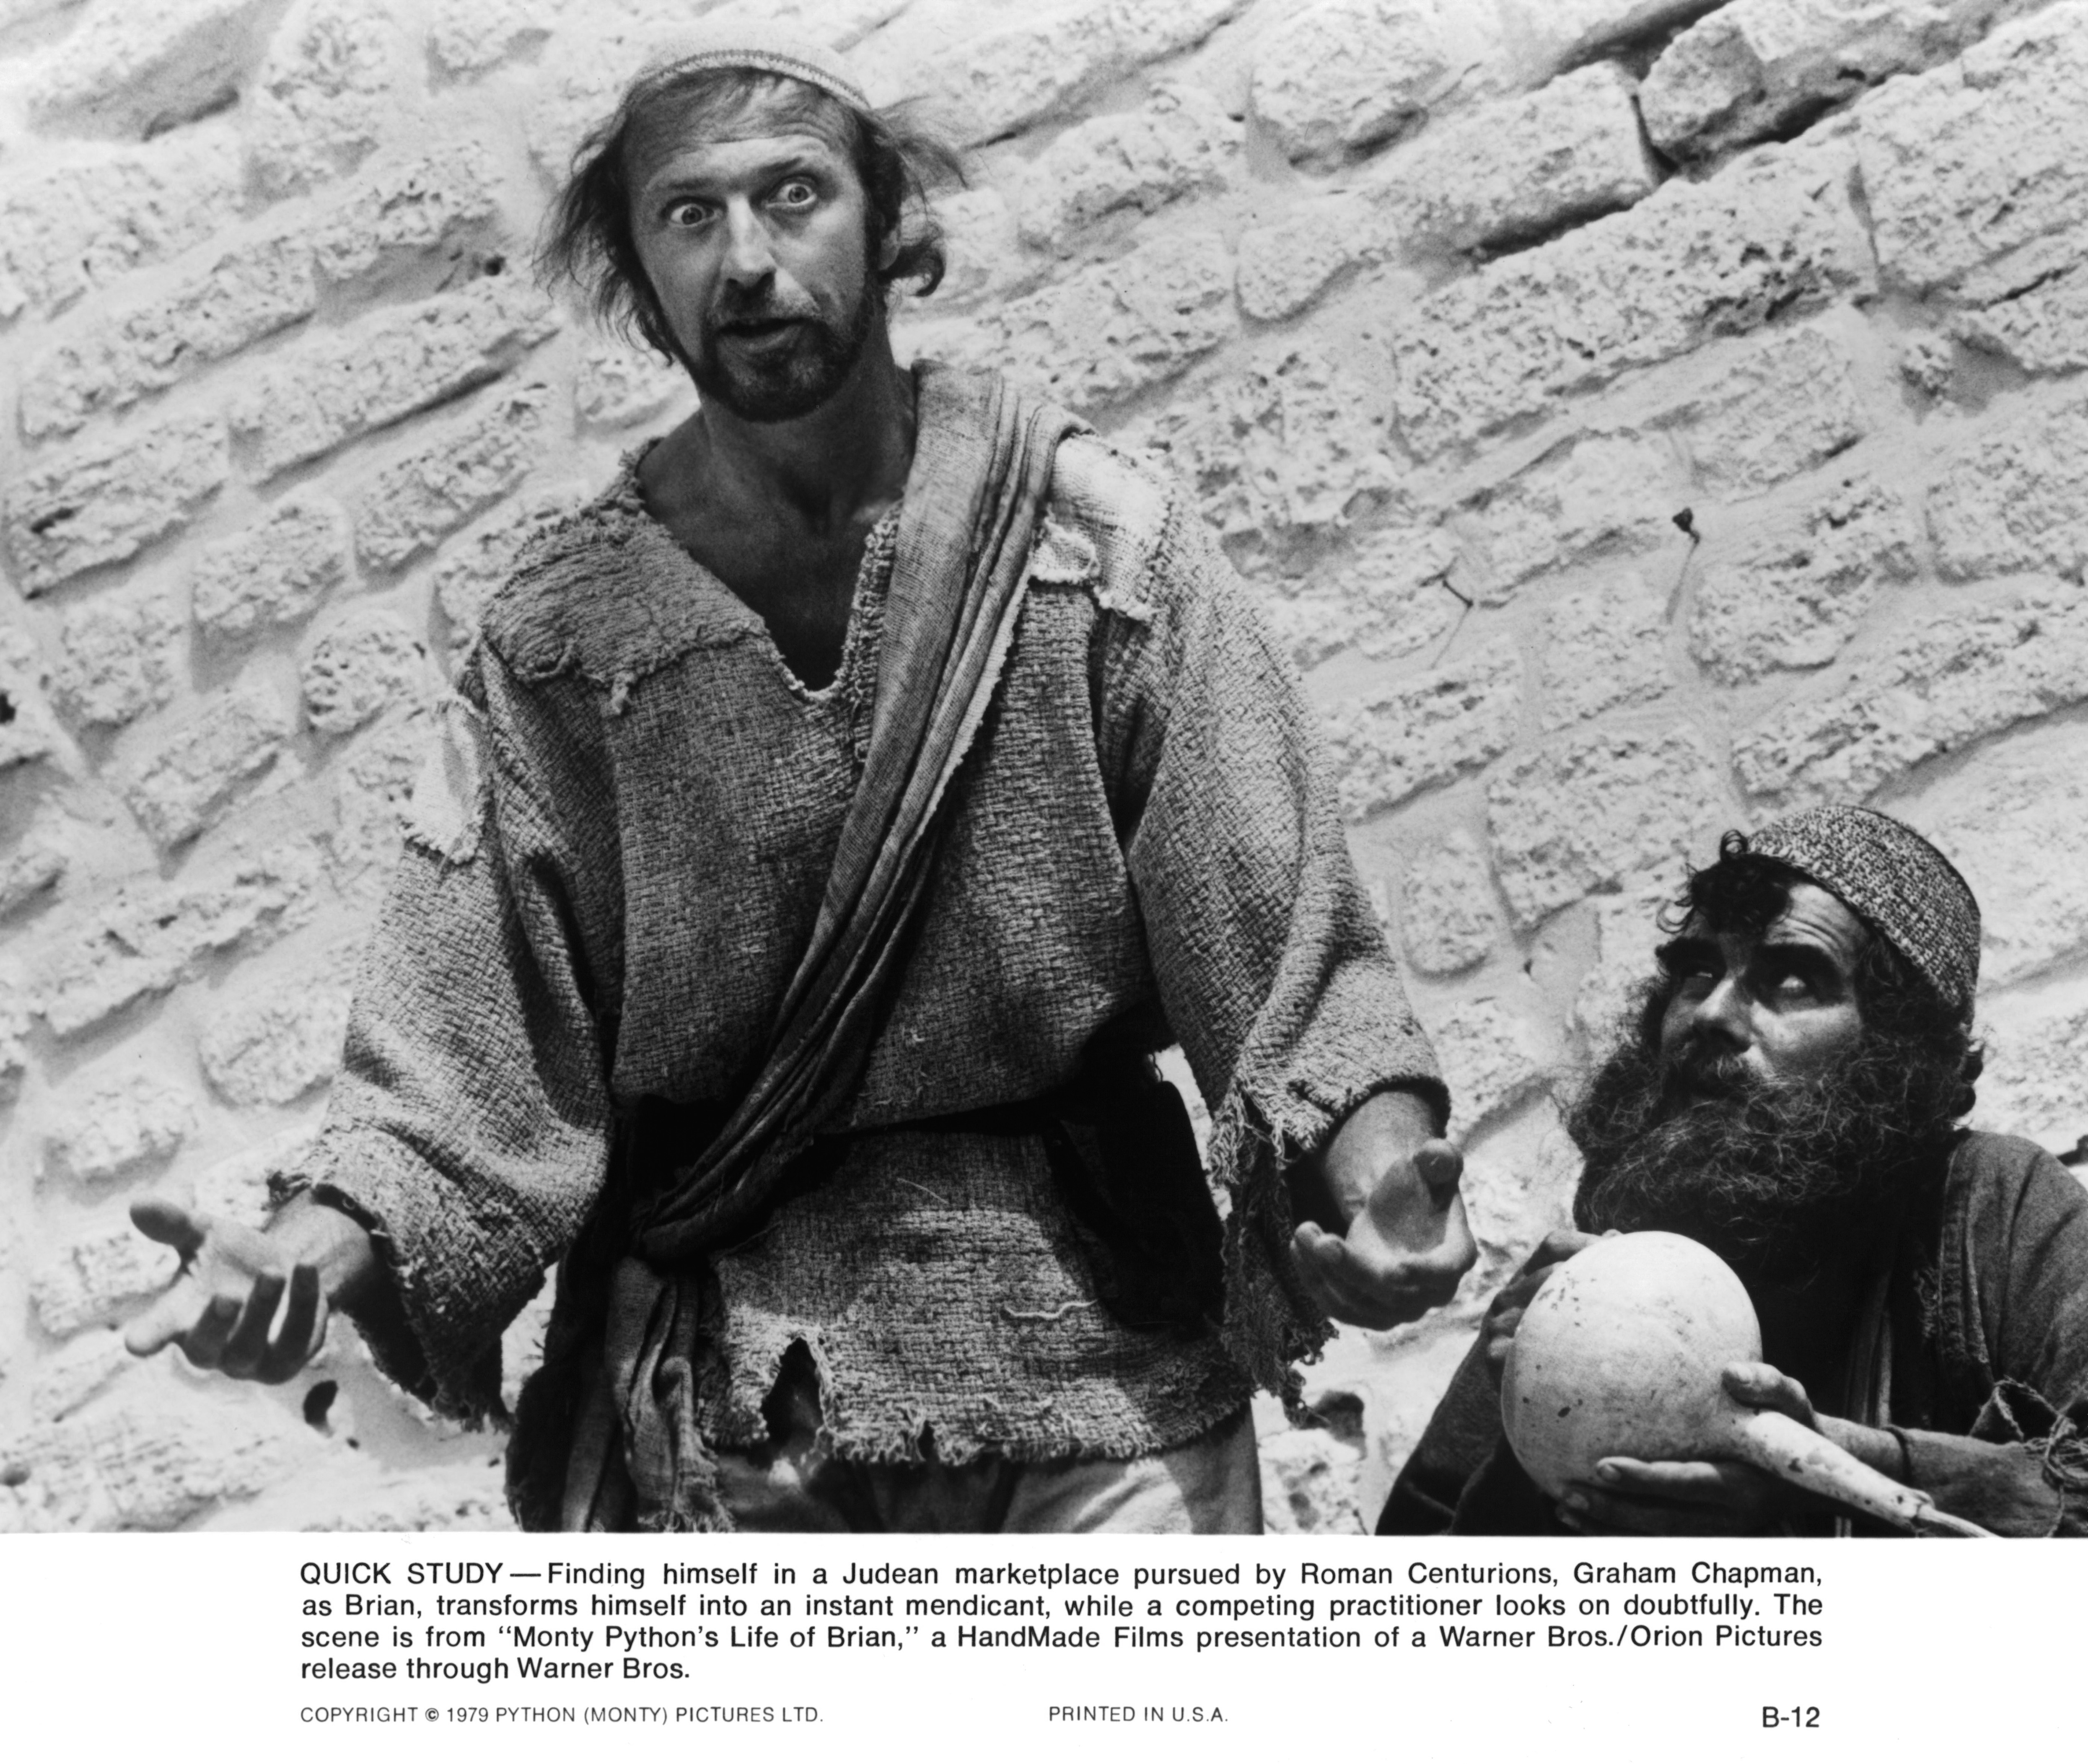 Graham Chapman and Terence Bayler in Life of Brian (1979)